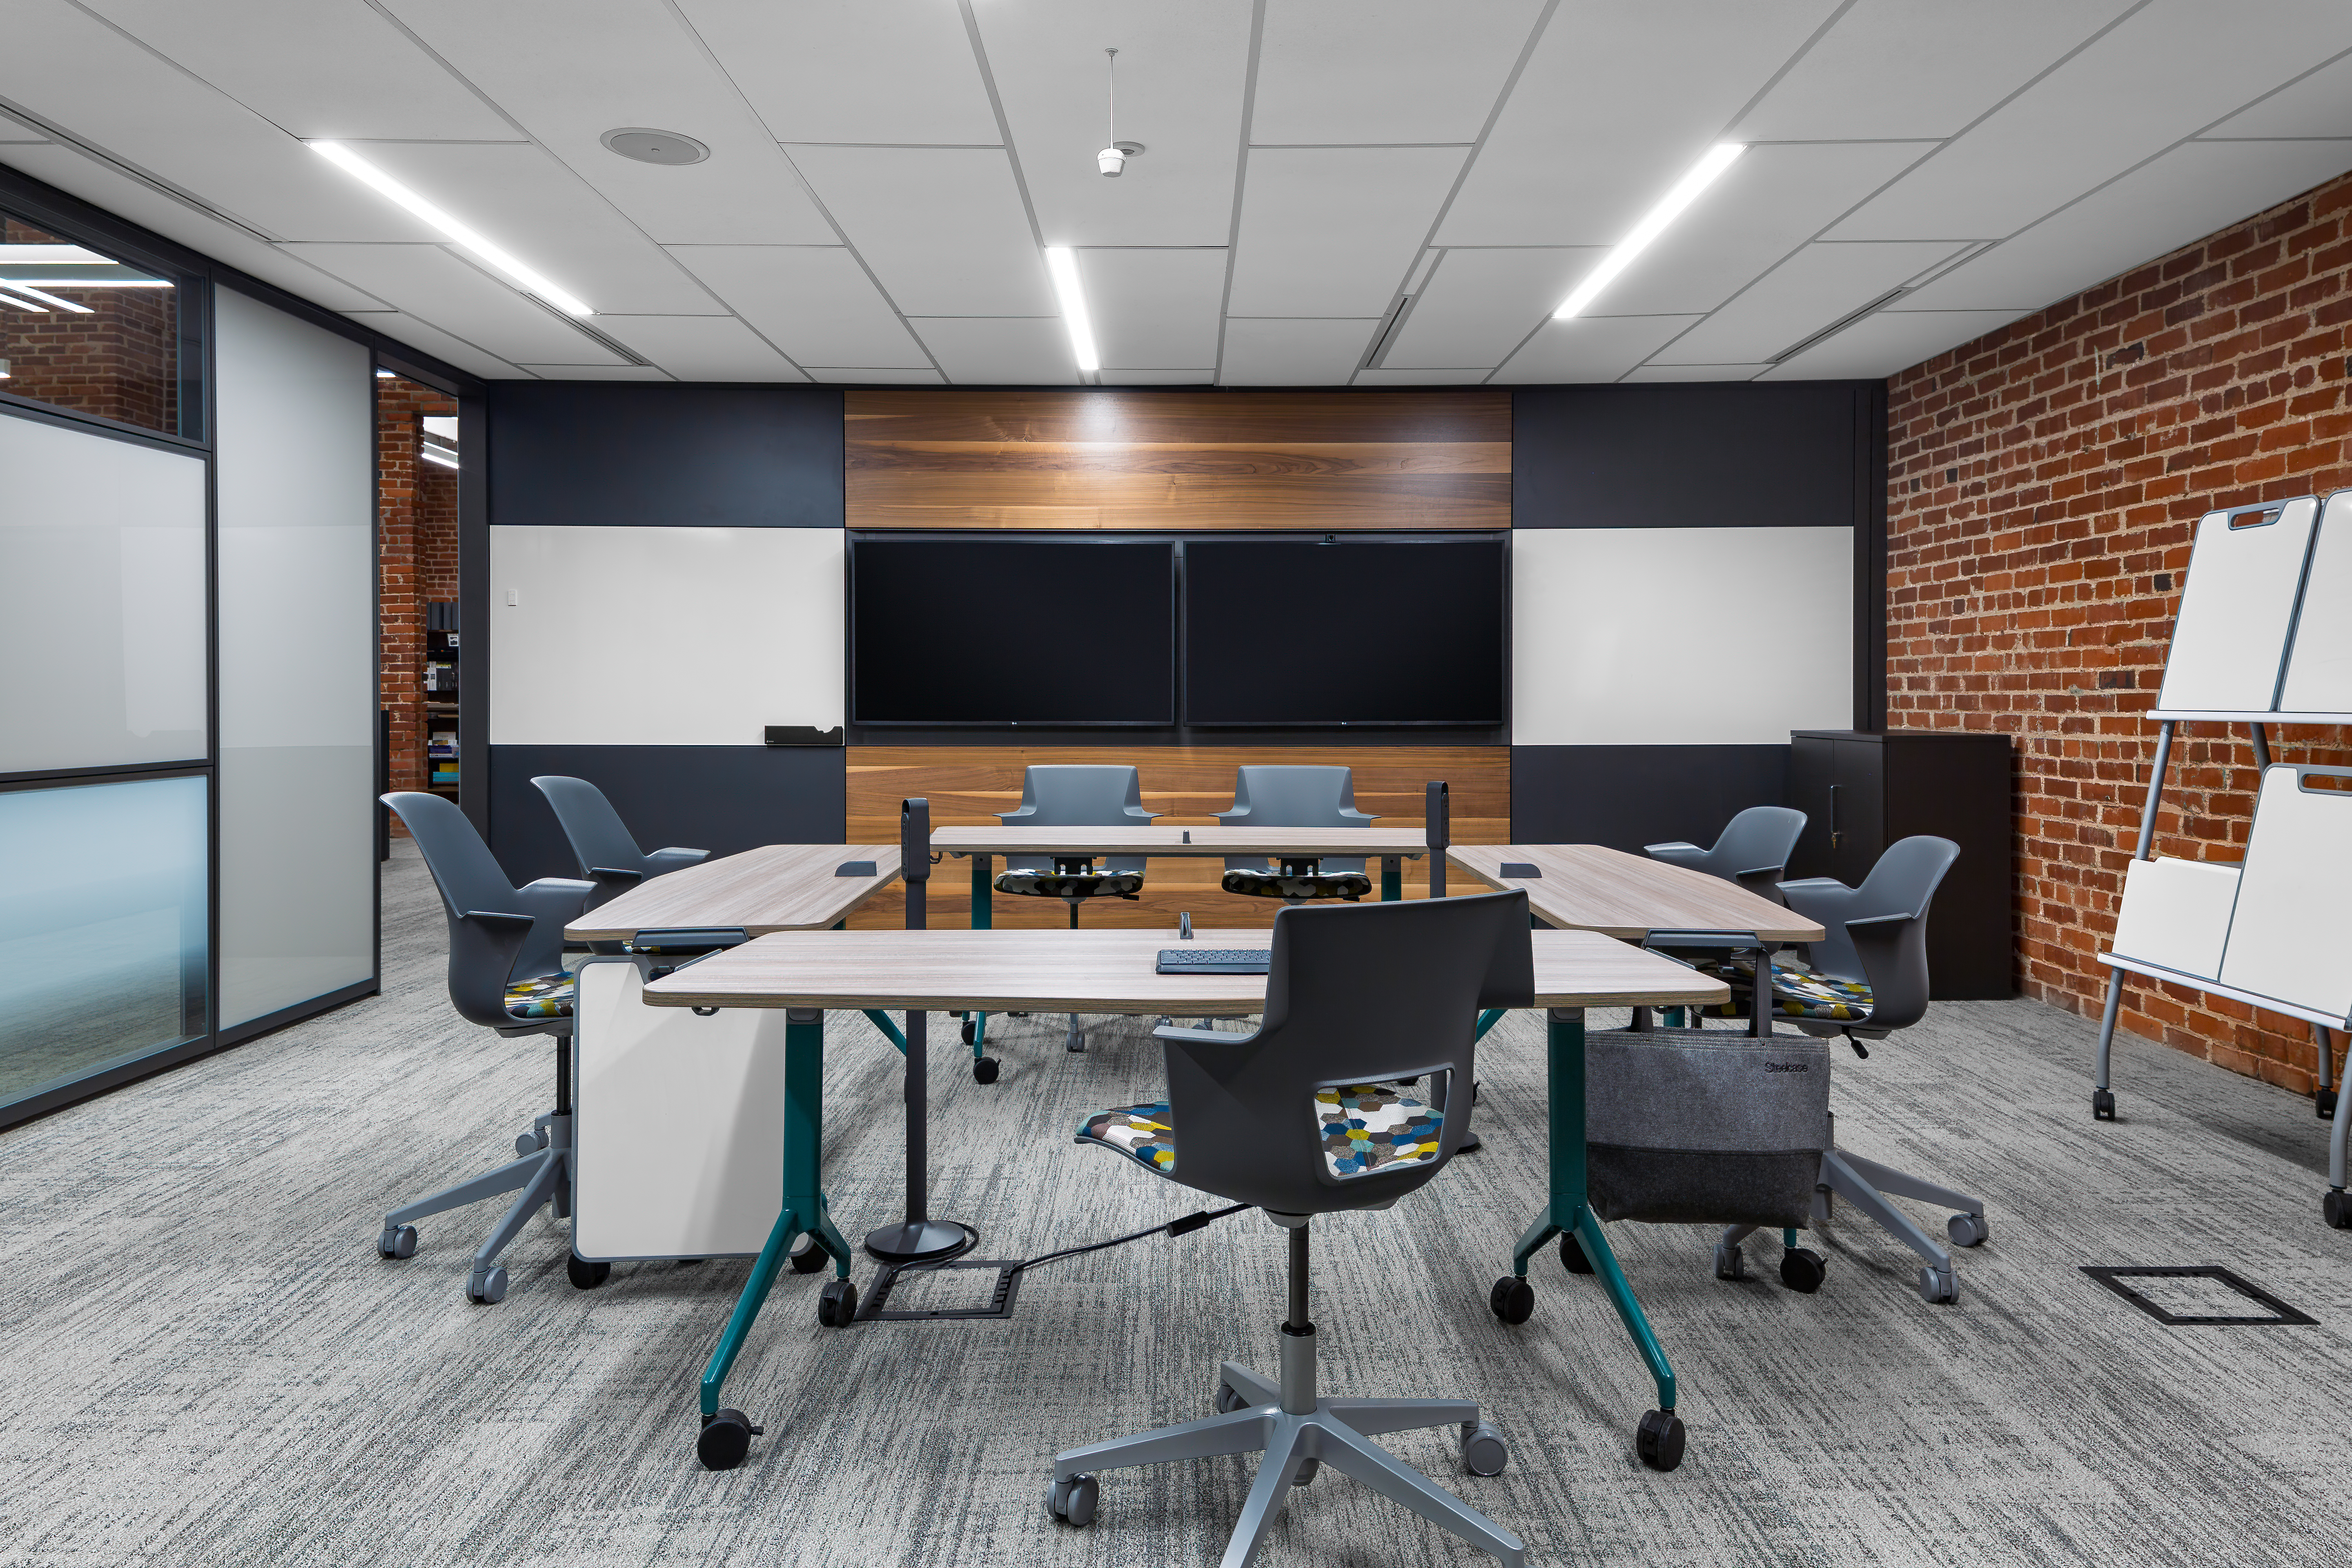 Space for learning, meeting and gathering